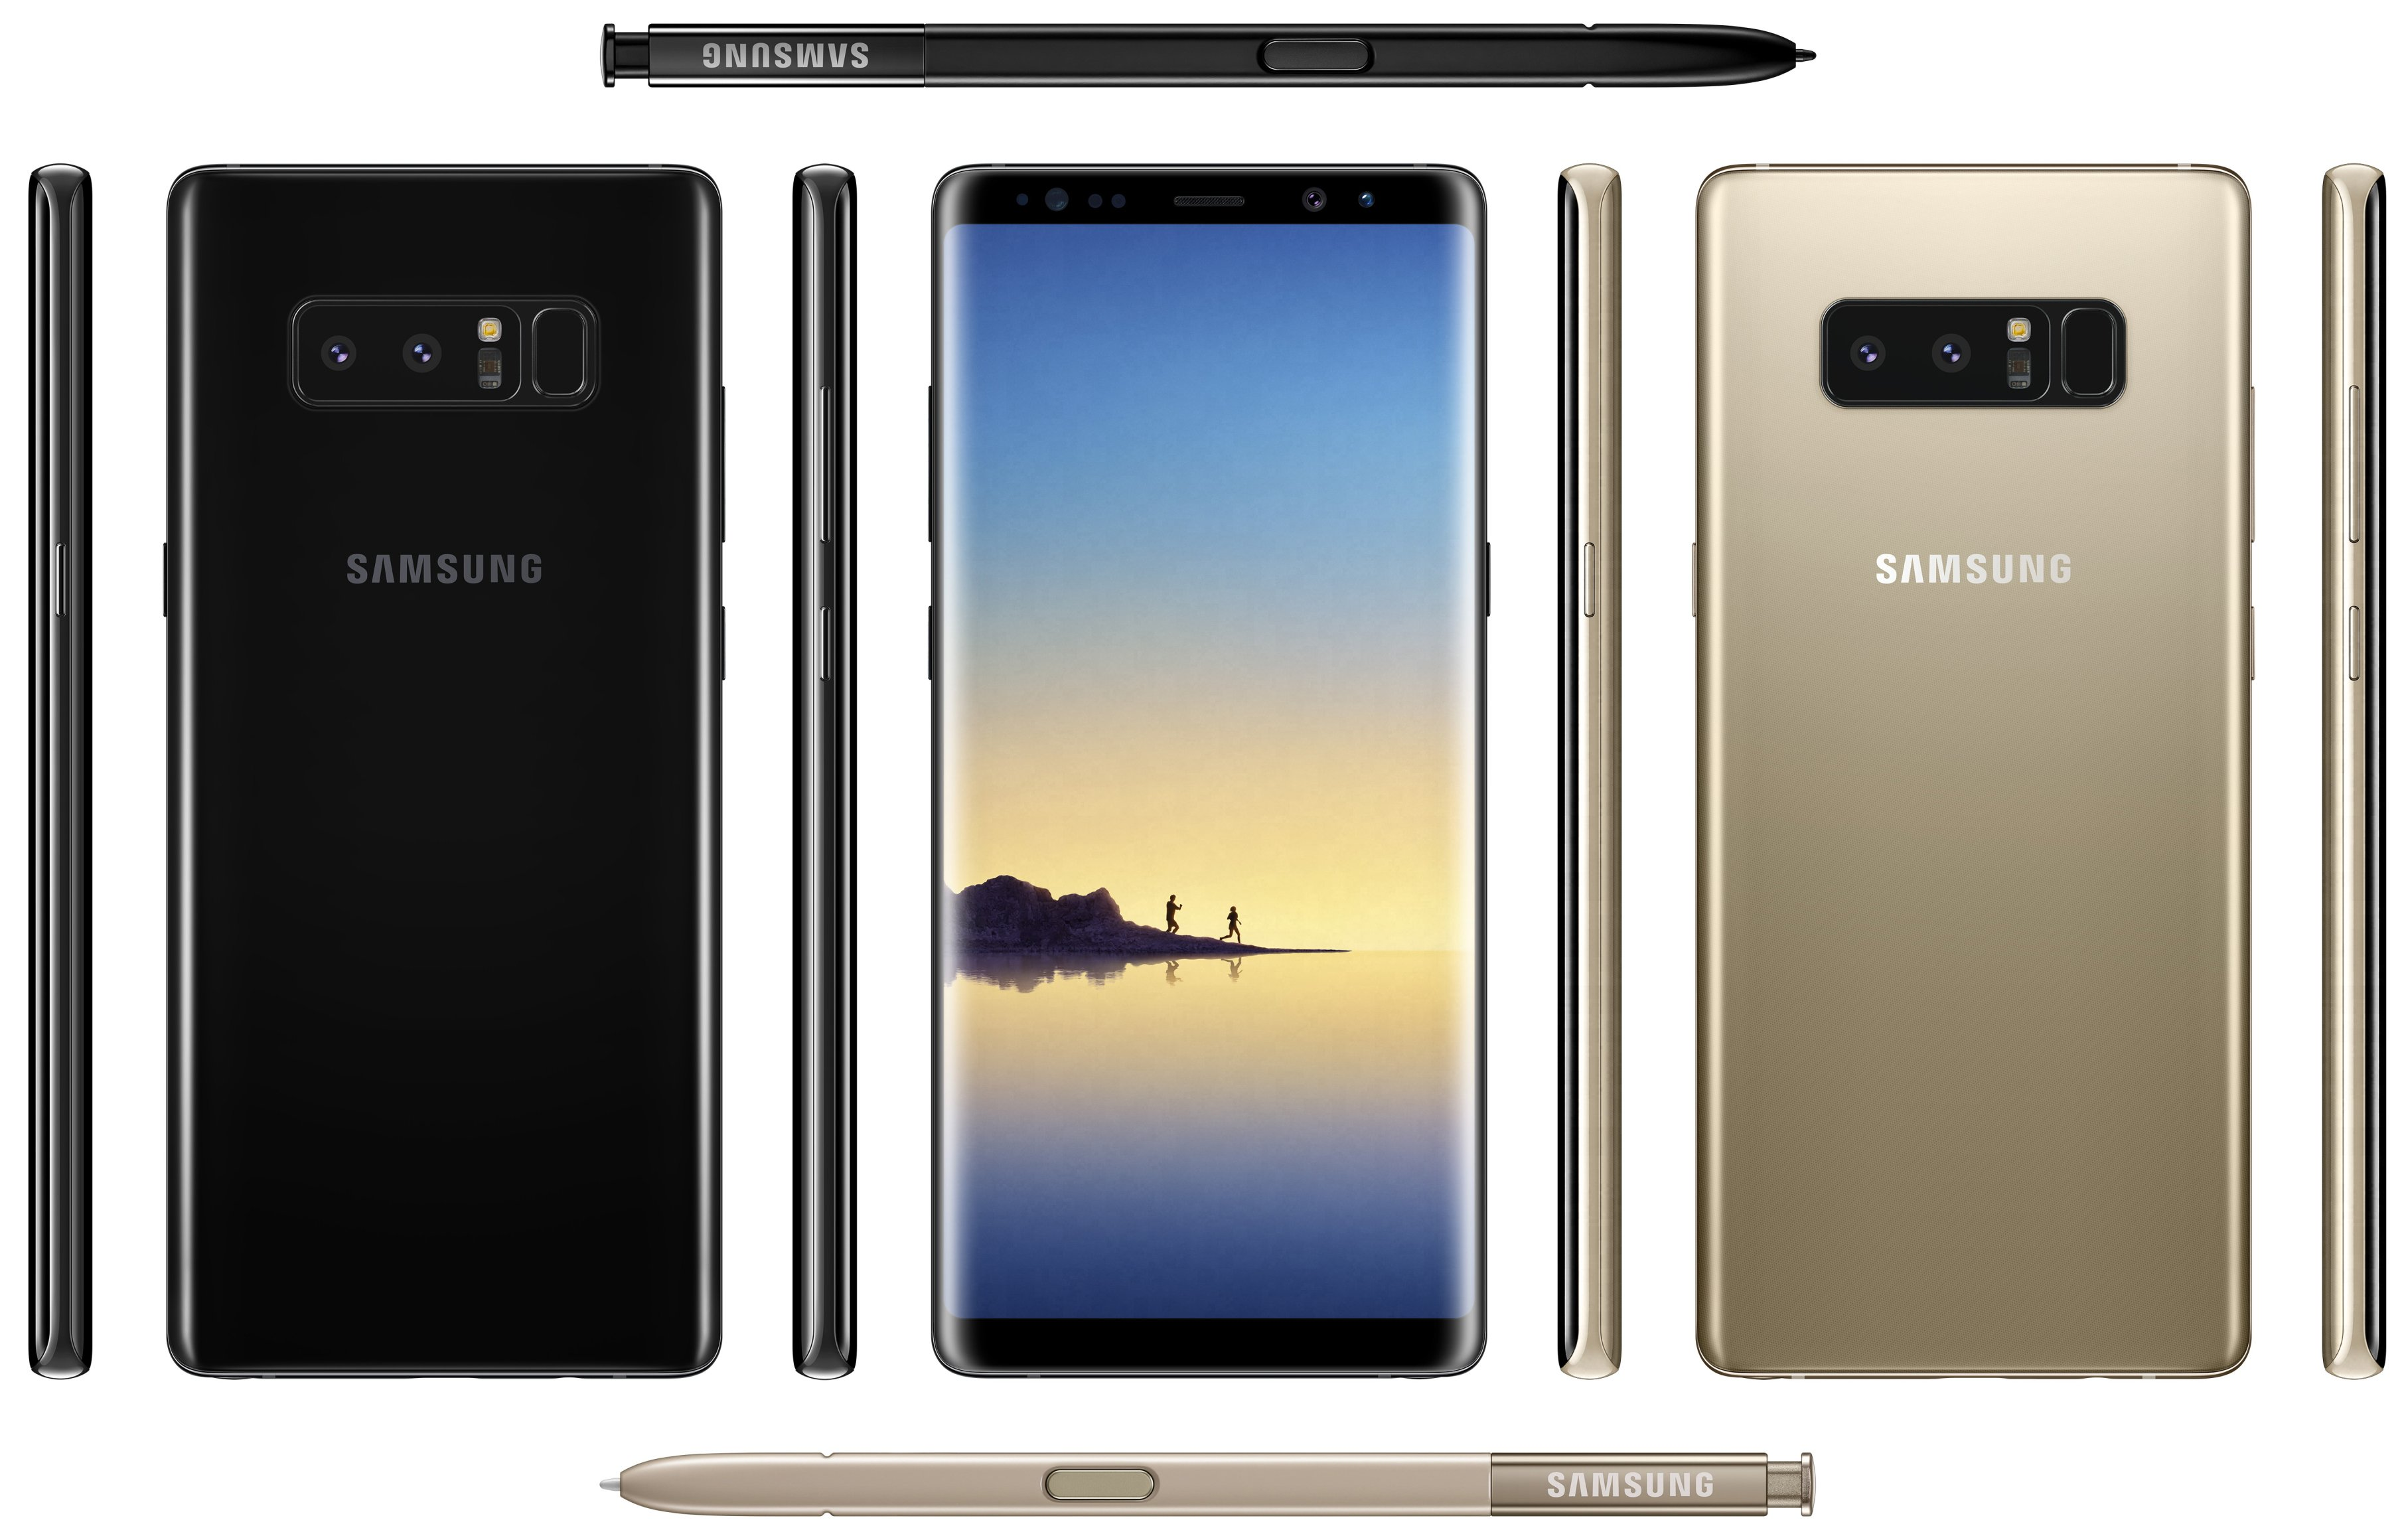 Enlarge The Galaxy Note 8 Press Image Check Out Those Cameras